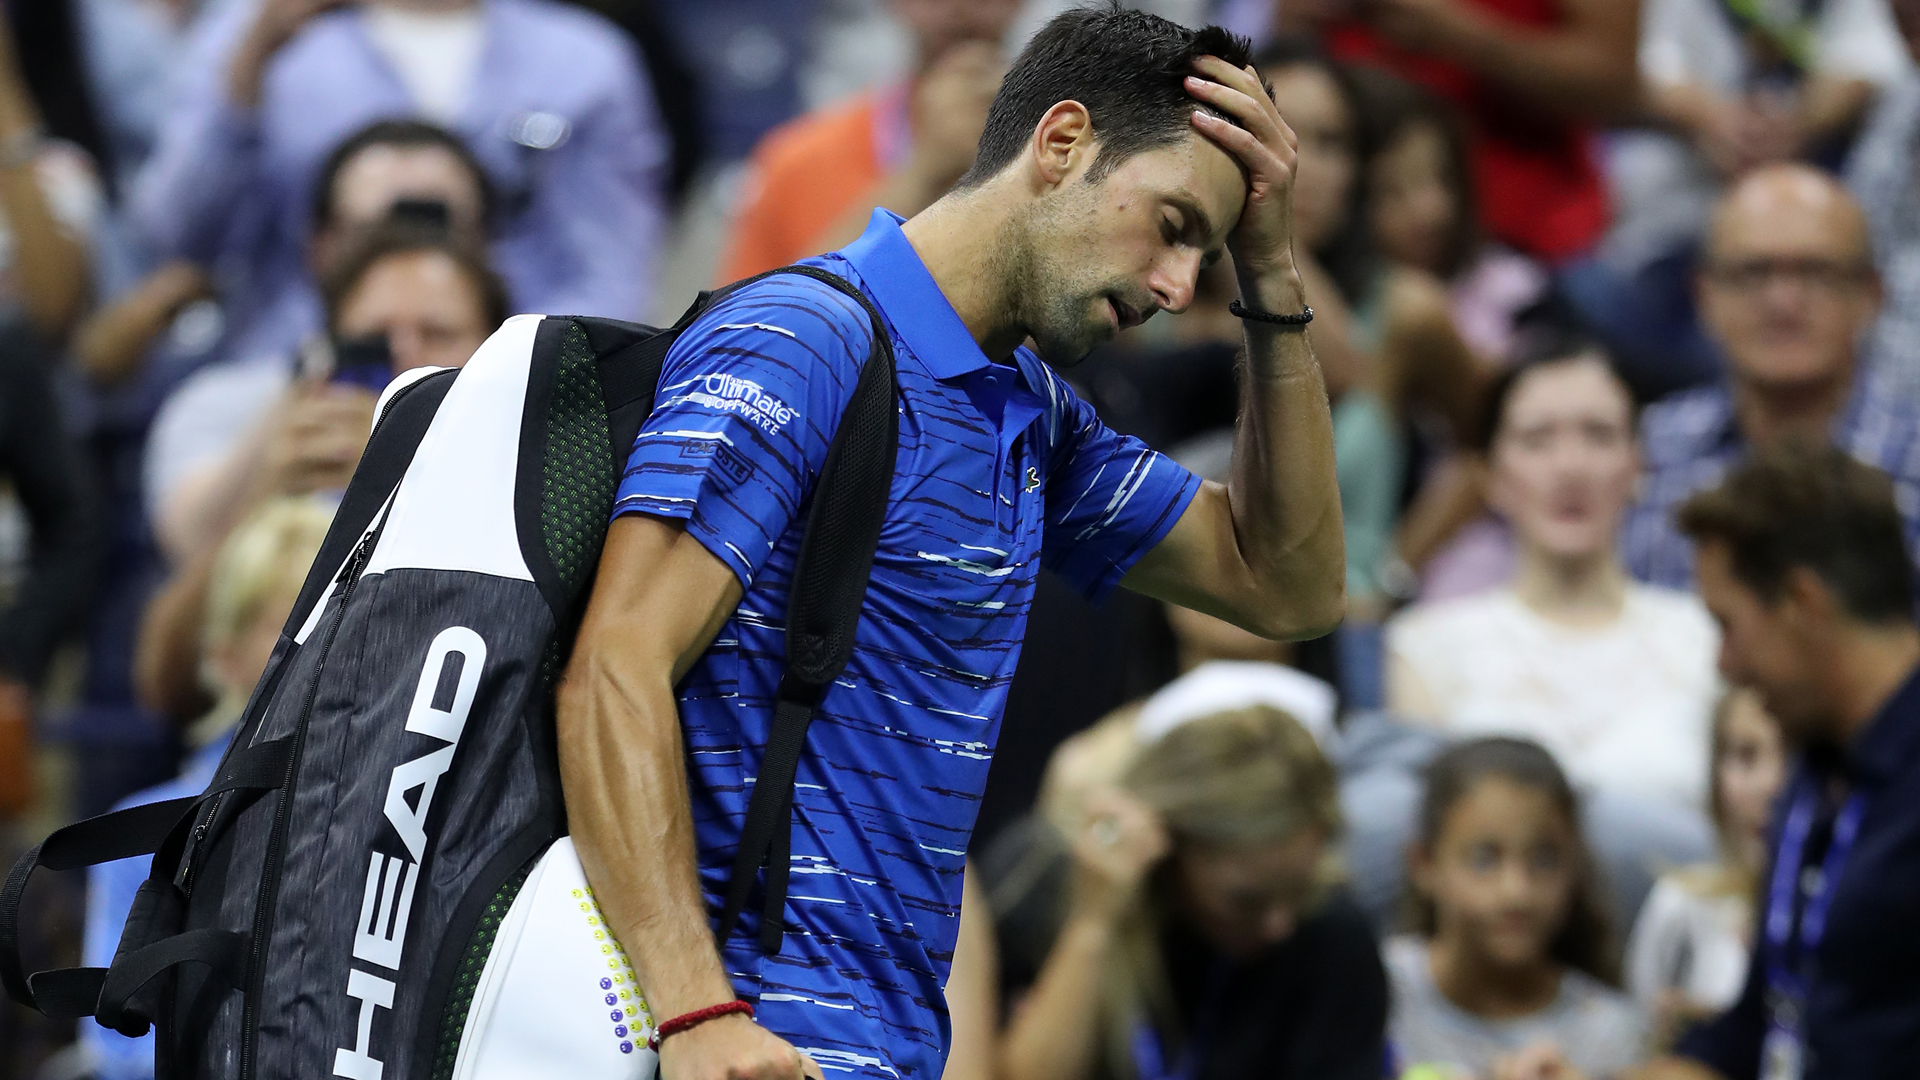 US Open 2019: Djokovic retires from Wawrinka clash, Federer